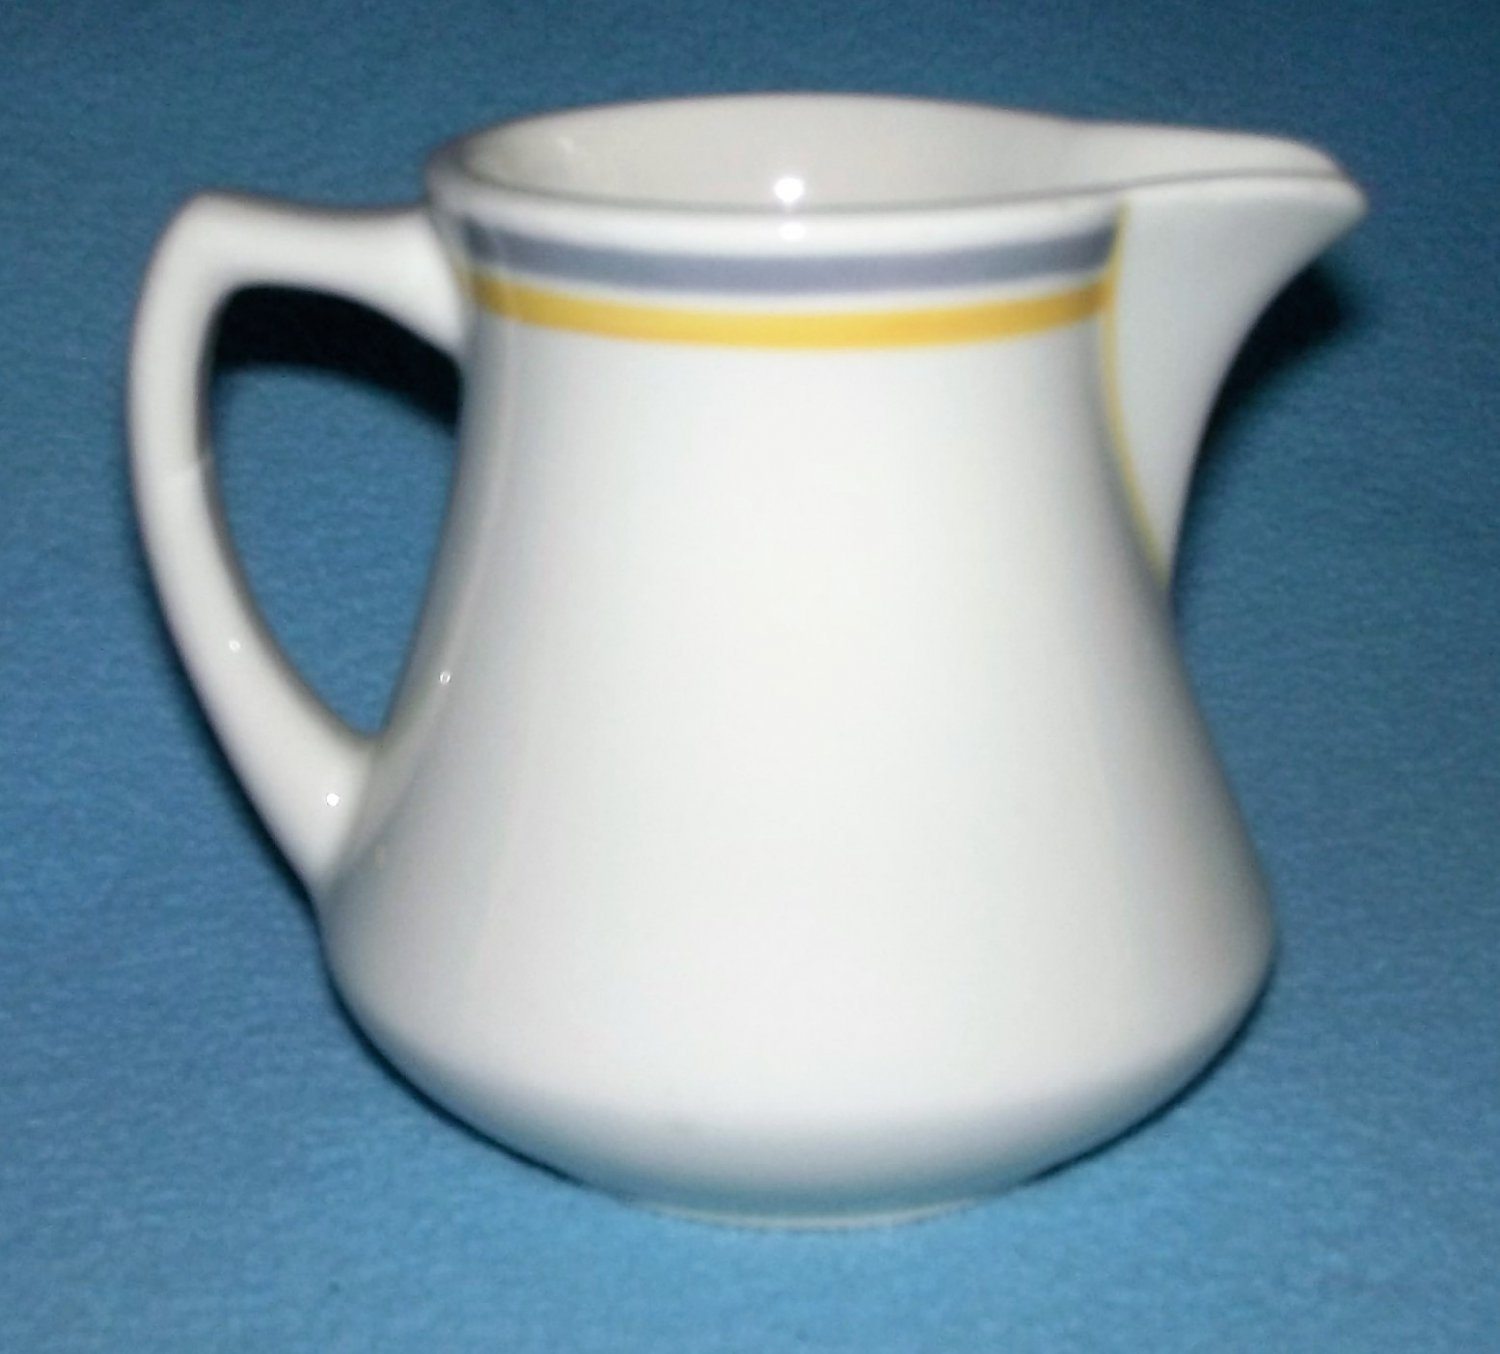 Vintage MAYER CHINA TRUE IVORY Large Creamer RESTAURANT WARE 1930's/40's